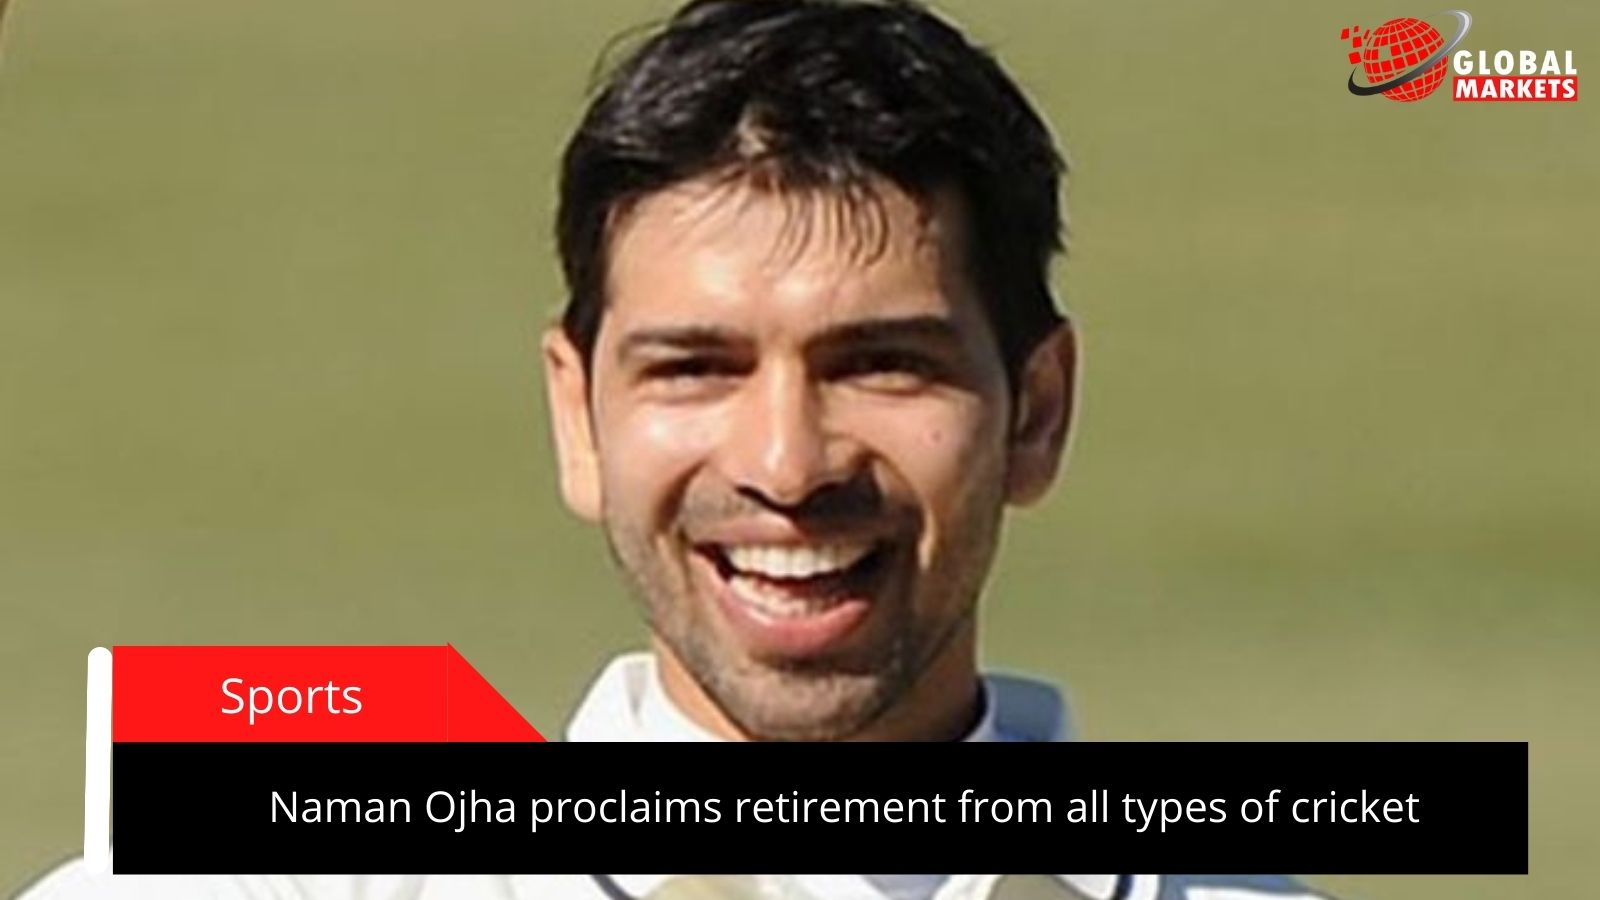 Naman Ojha proclaims retirement from all types of cricket